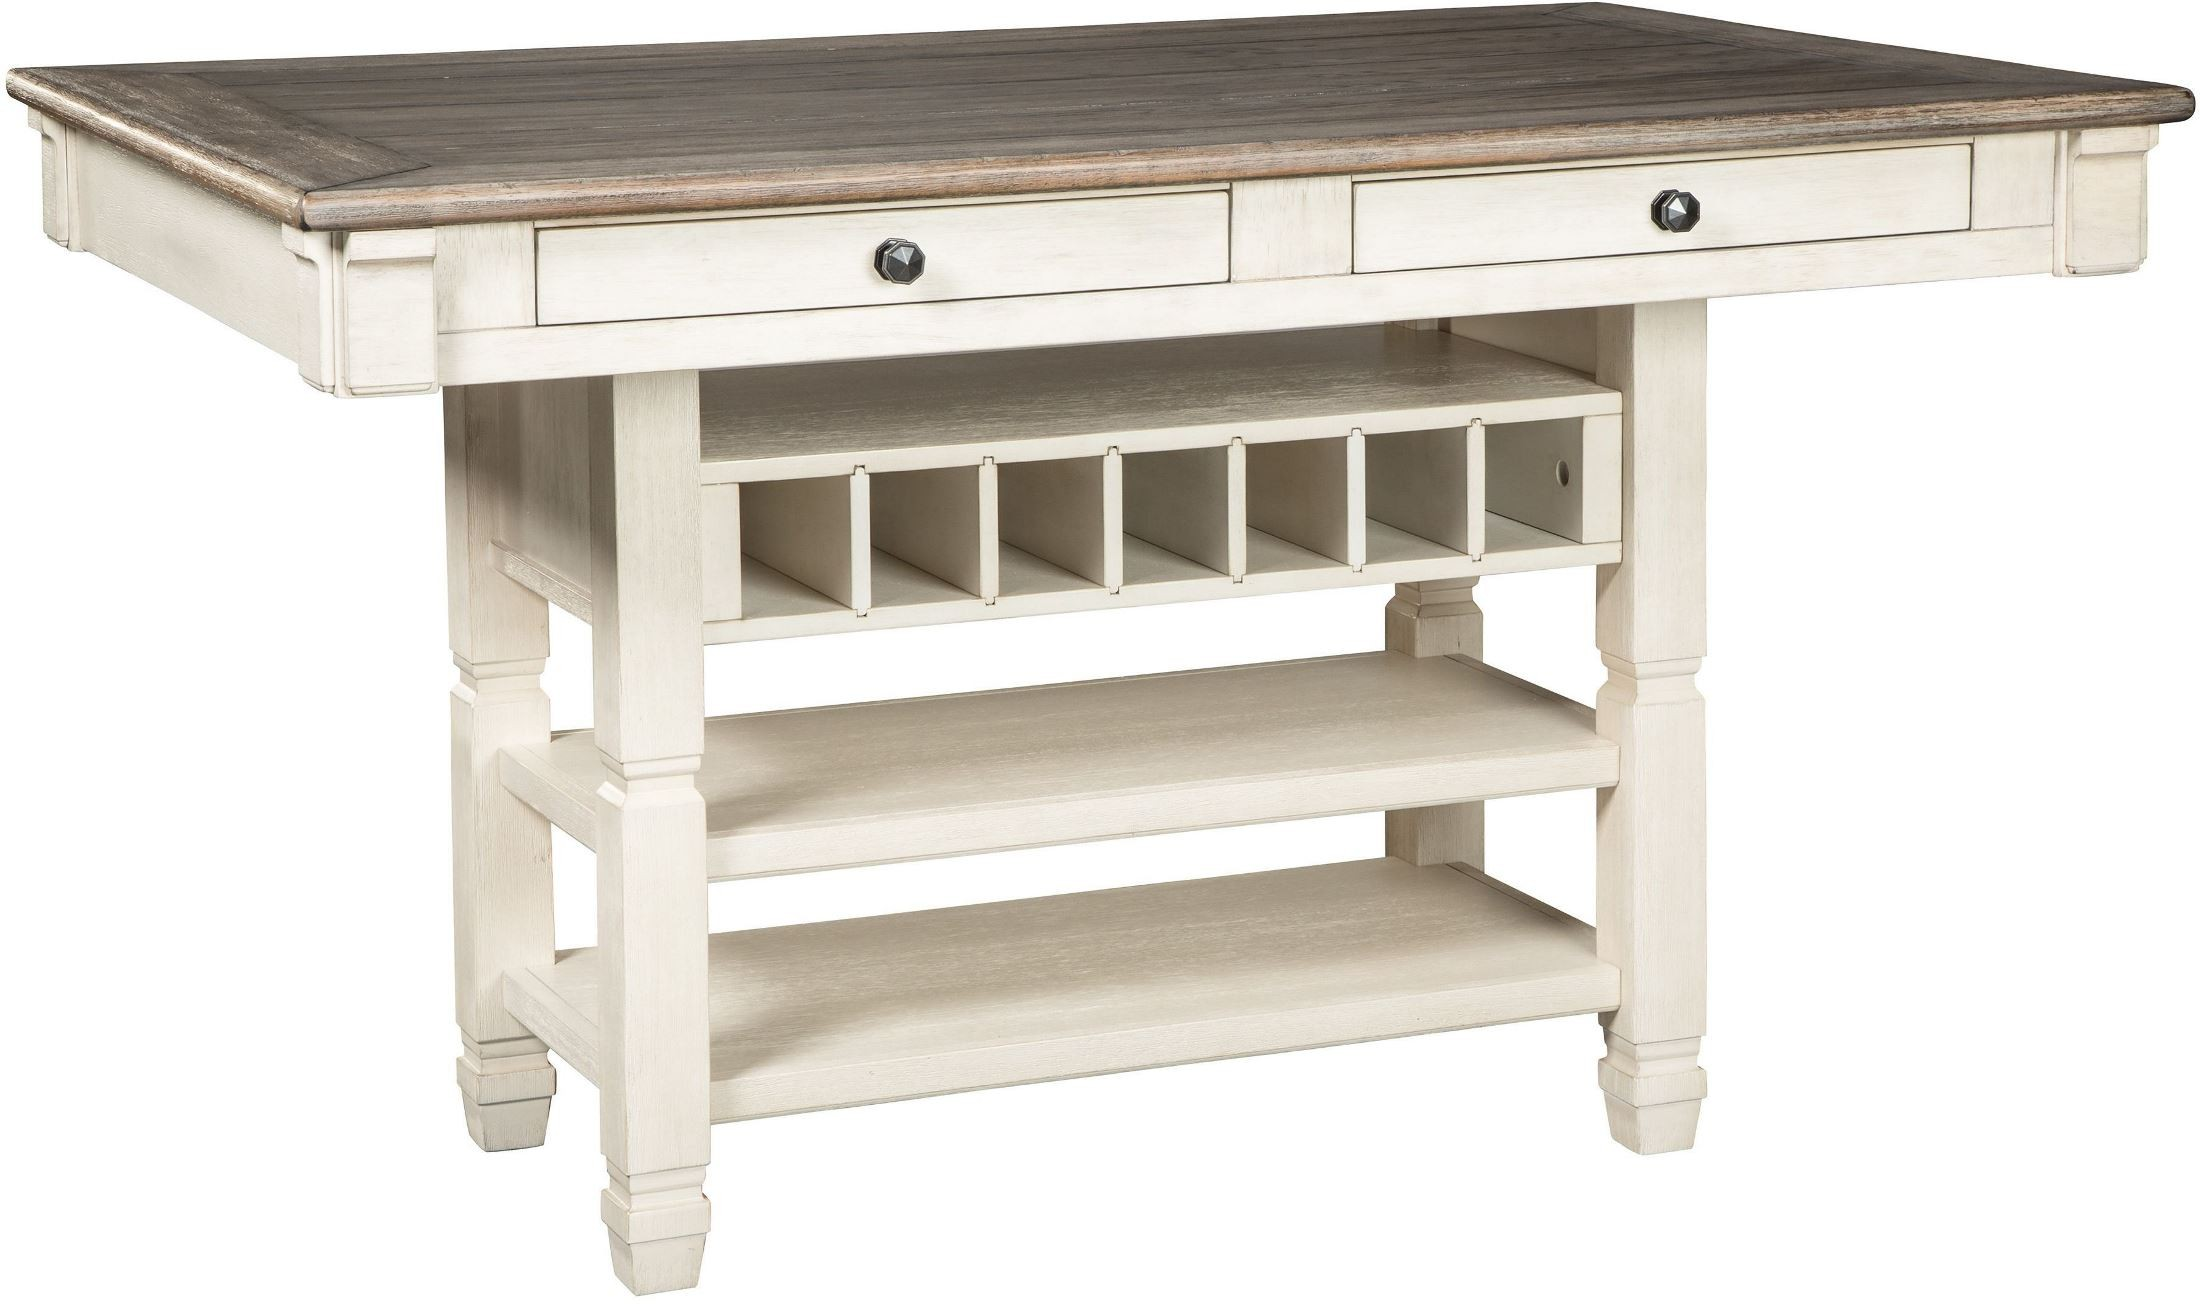 Bolanburg White and Gray Rectangular Counter Height Dining  : d647 32 front sw1 from colemanfurniture.com size 2200 x 1304 jpeg 278kB